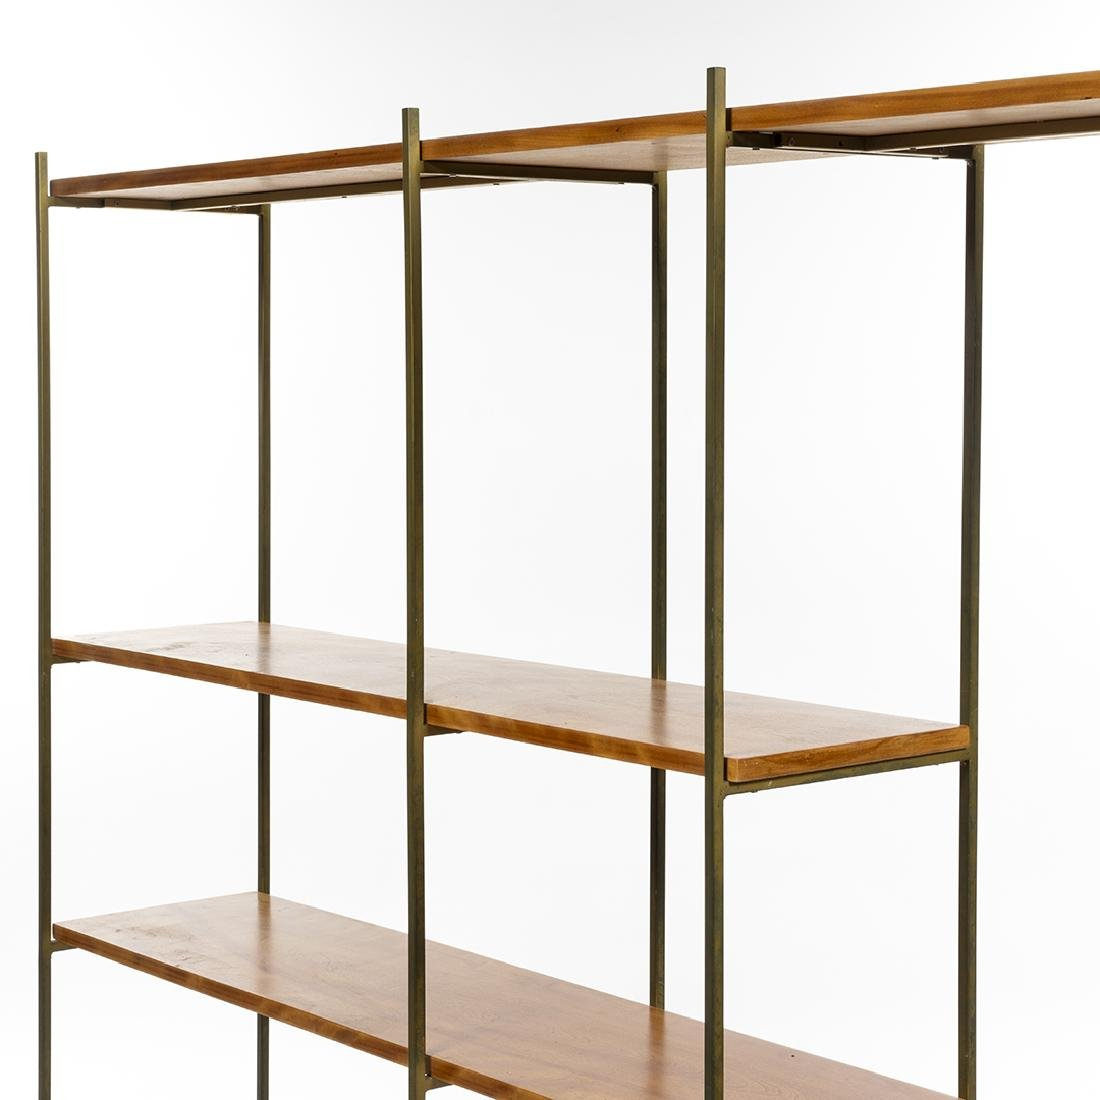 Kenneth Lind Room Divider - 4